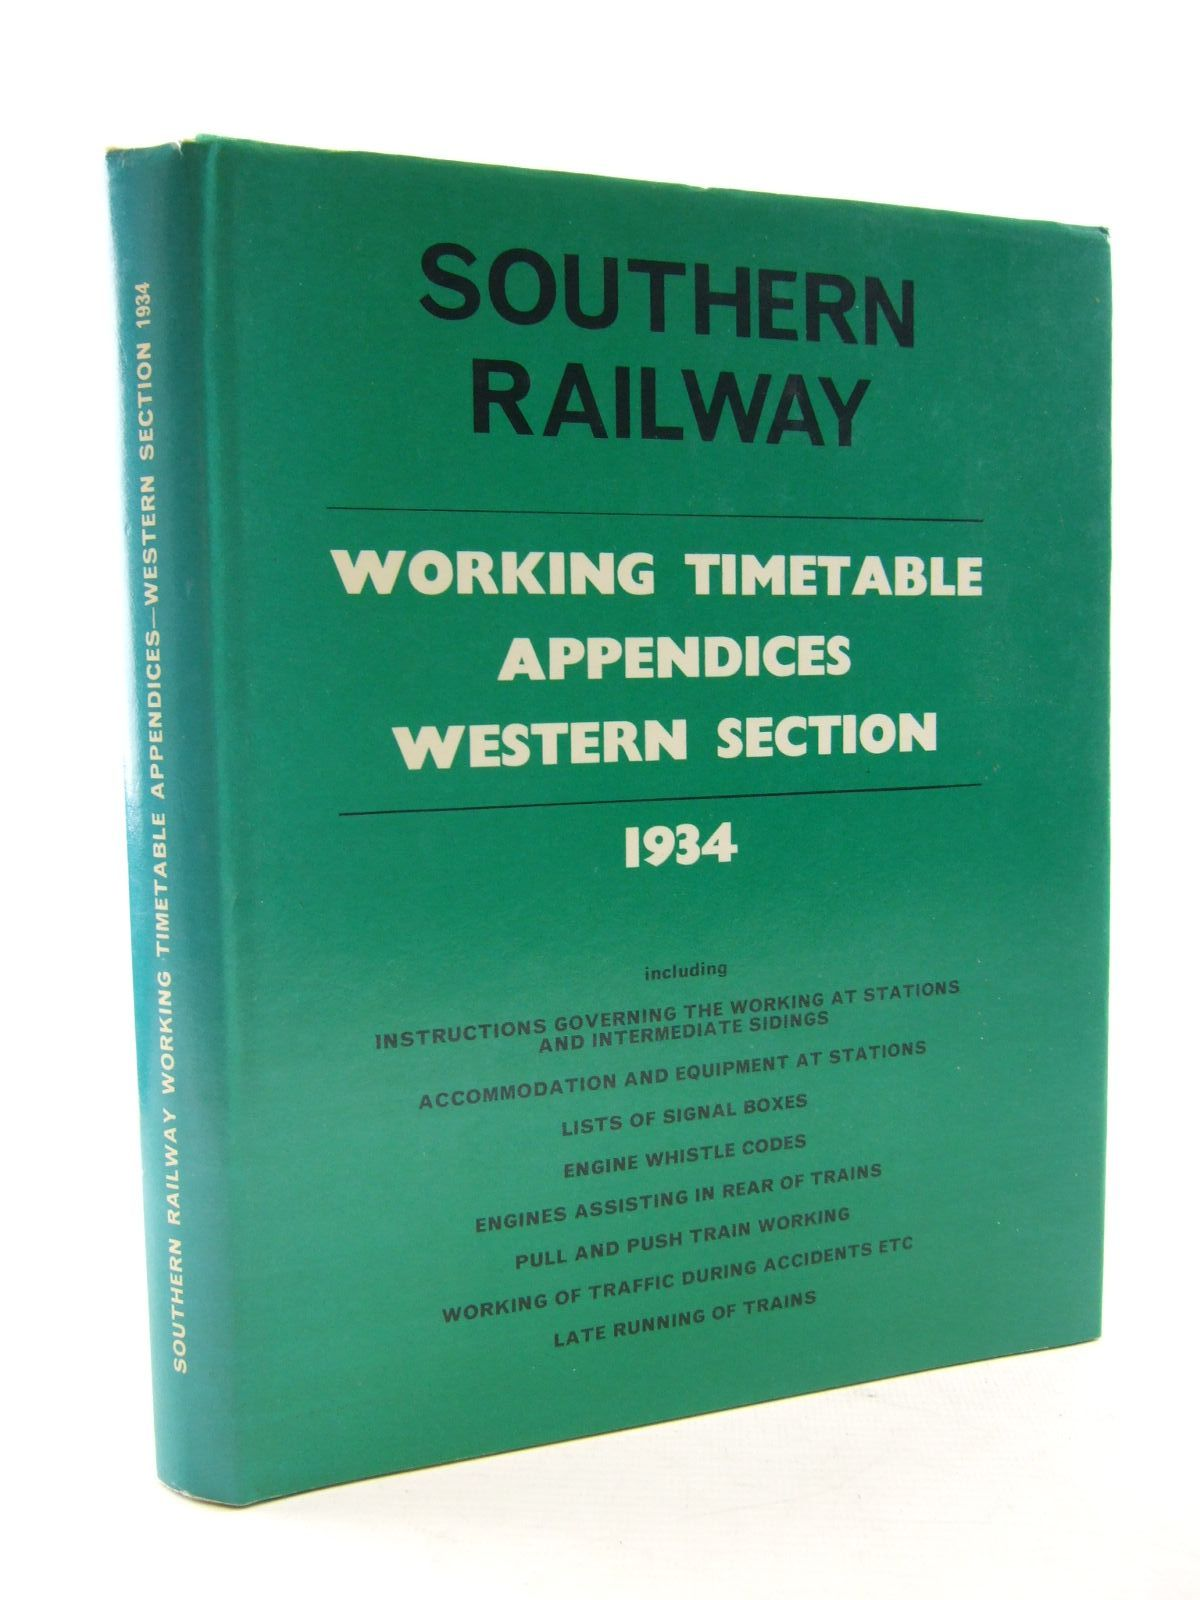 Photo of SOUTHERN RAILWAY WORKING TIMETABLE APPENDICES WESTERN SECTION 1934 published by Bradford Barton (STOCK CODE: 1706744)  for sale by Stella & Rose's Books